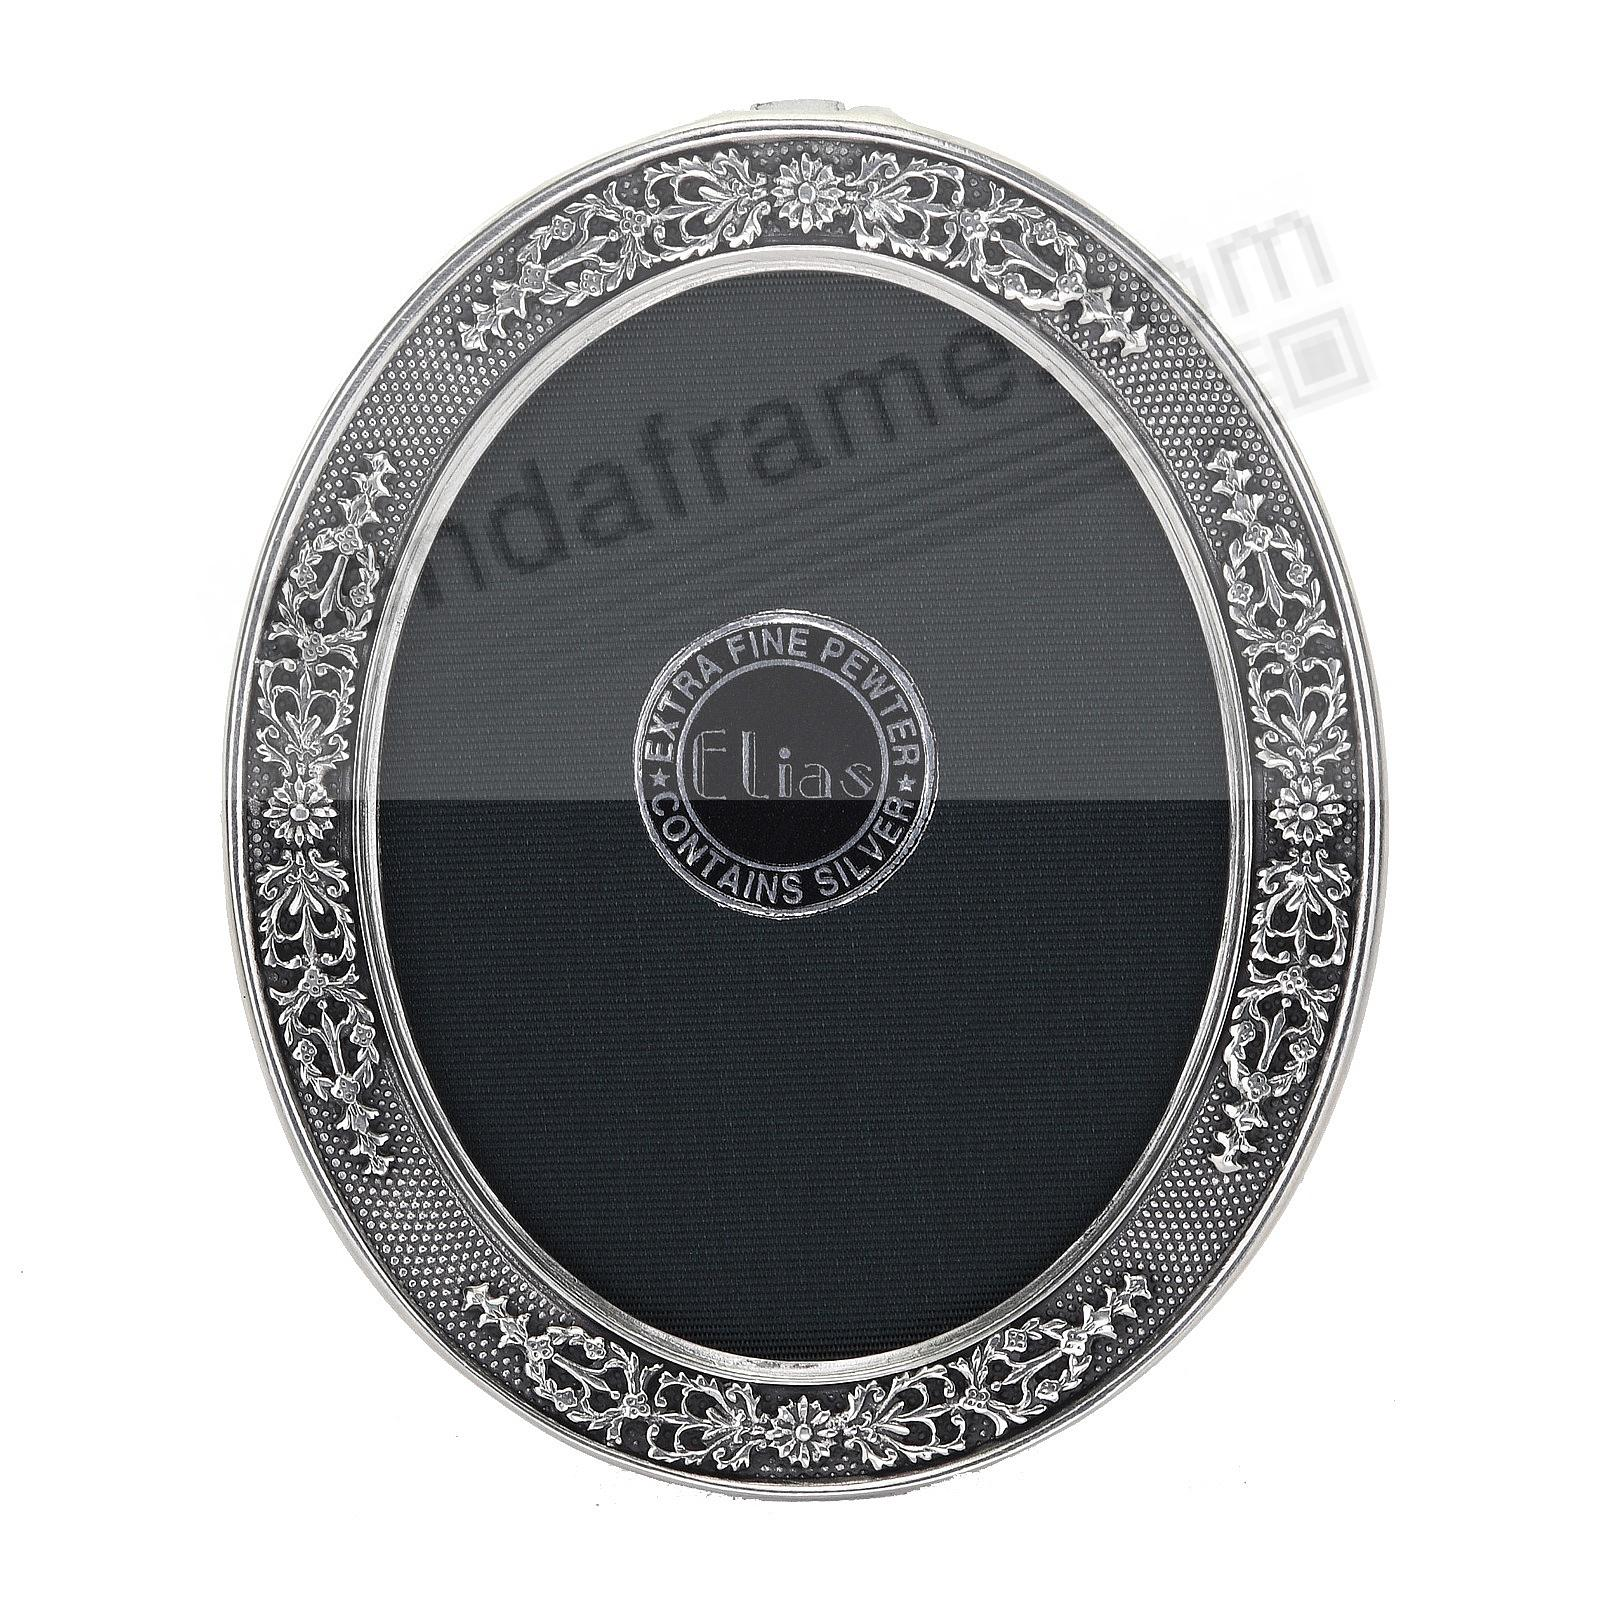 FRENCH STIPLED OVAL Fine Pewter<br>by Elias Artmetal&reg;